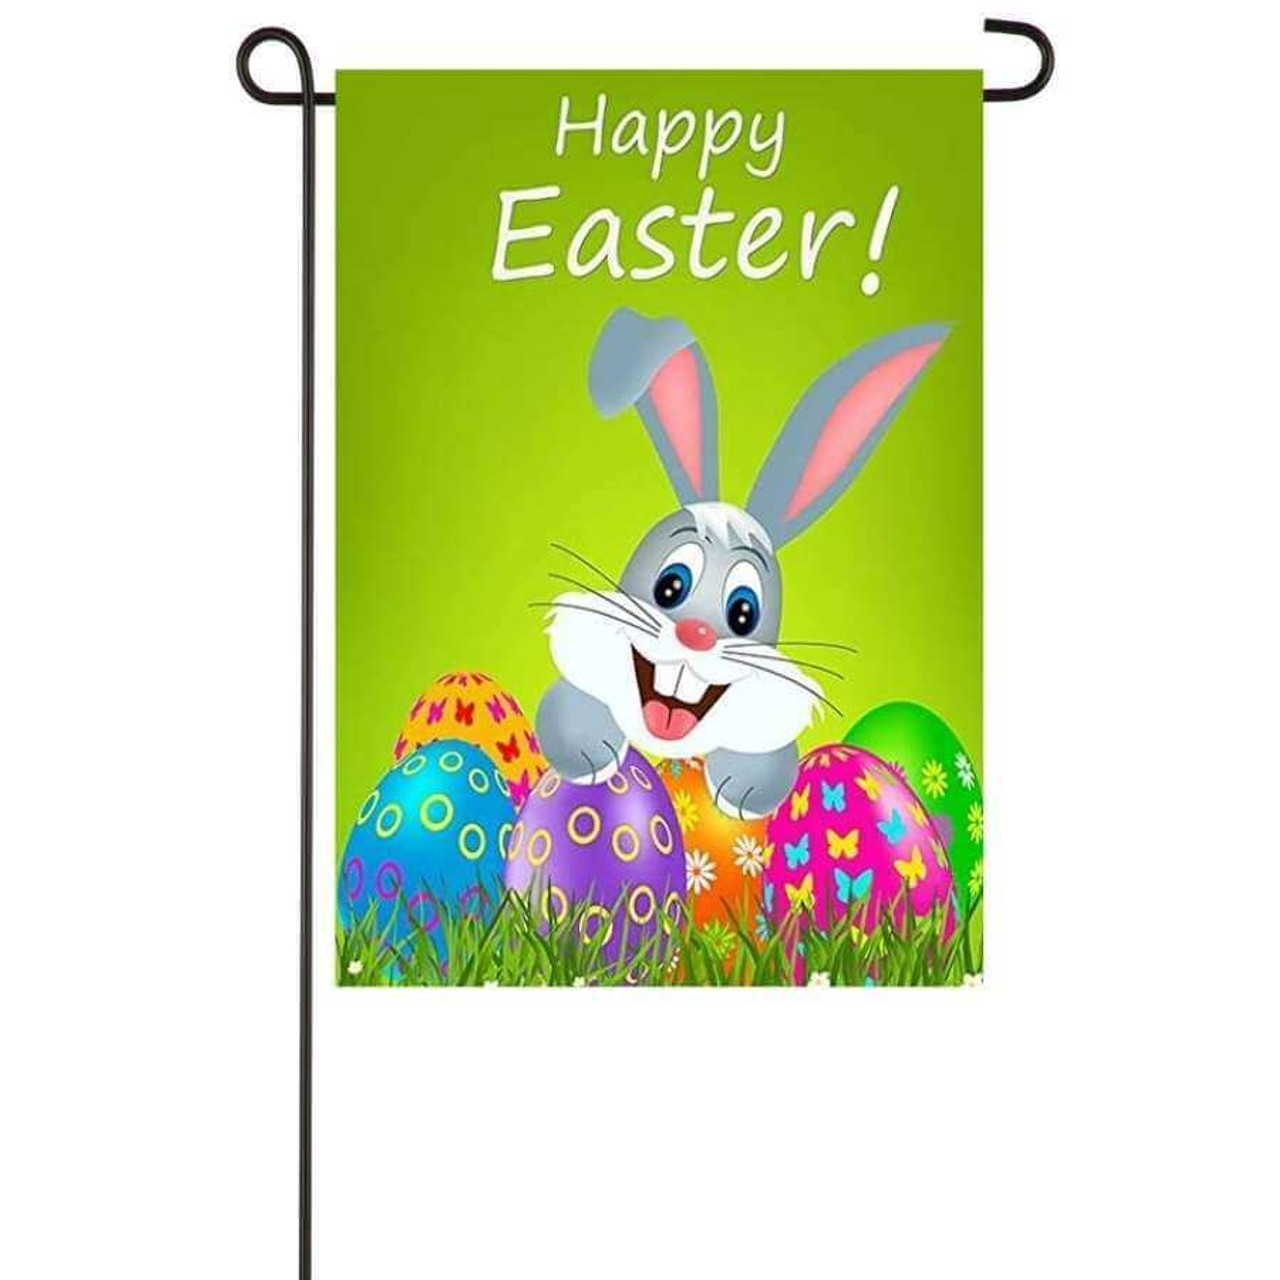 """The garden banner has a """"Bugs Bunny"""" look alike in a field of colorful Easter eggs surrounded by a bright green background.  The words """"Happy Easter"""" are on top."""